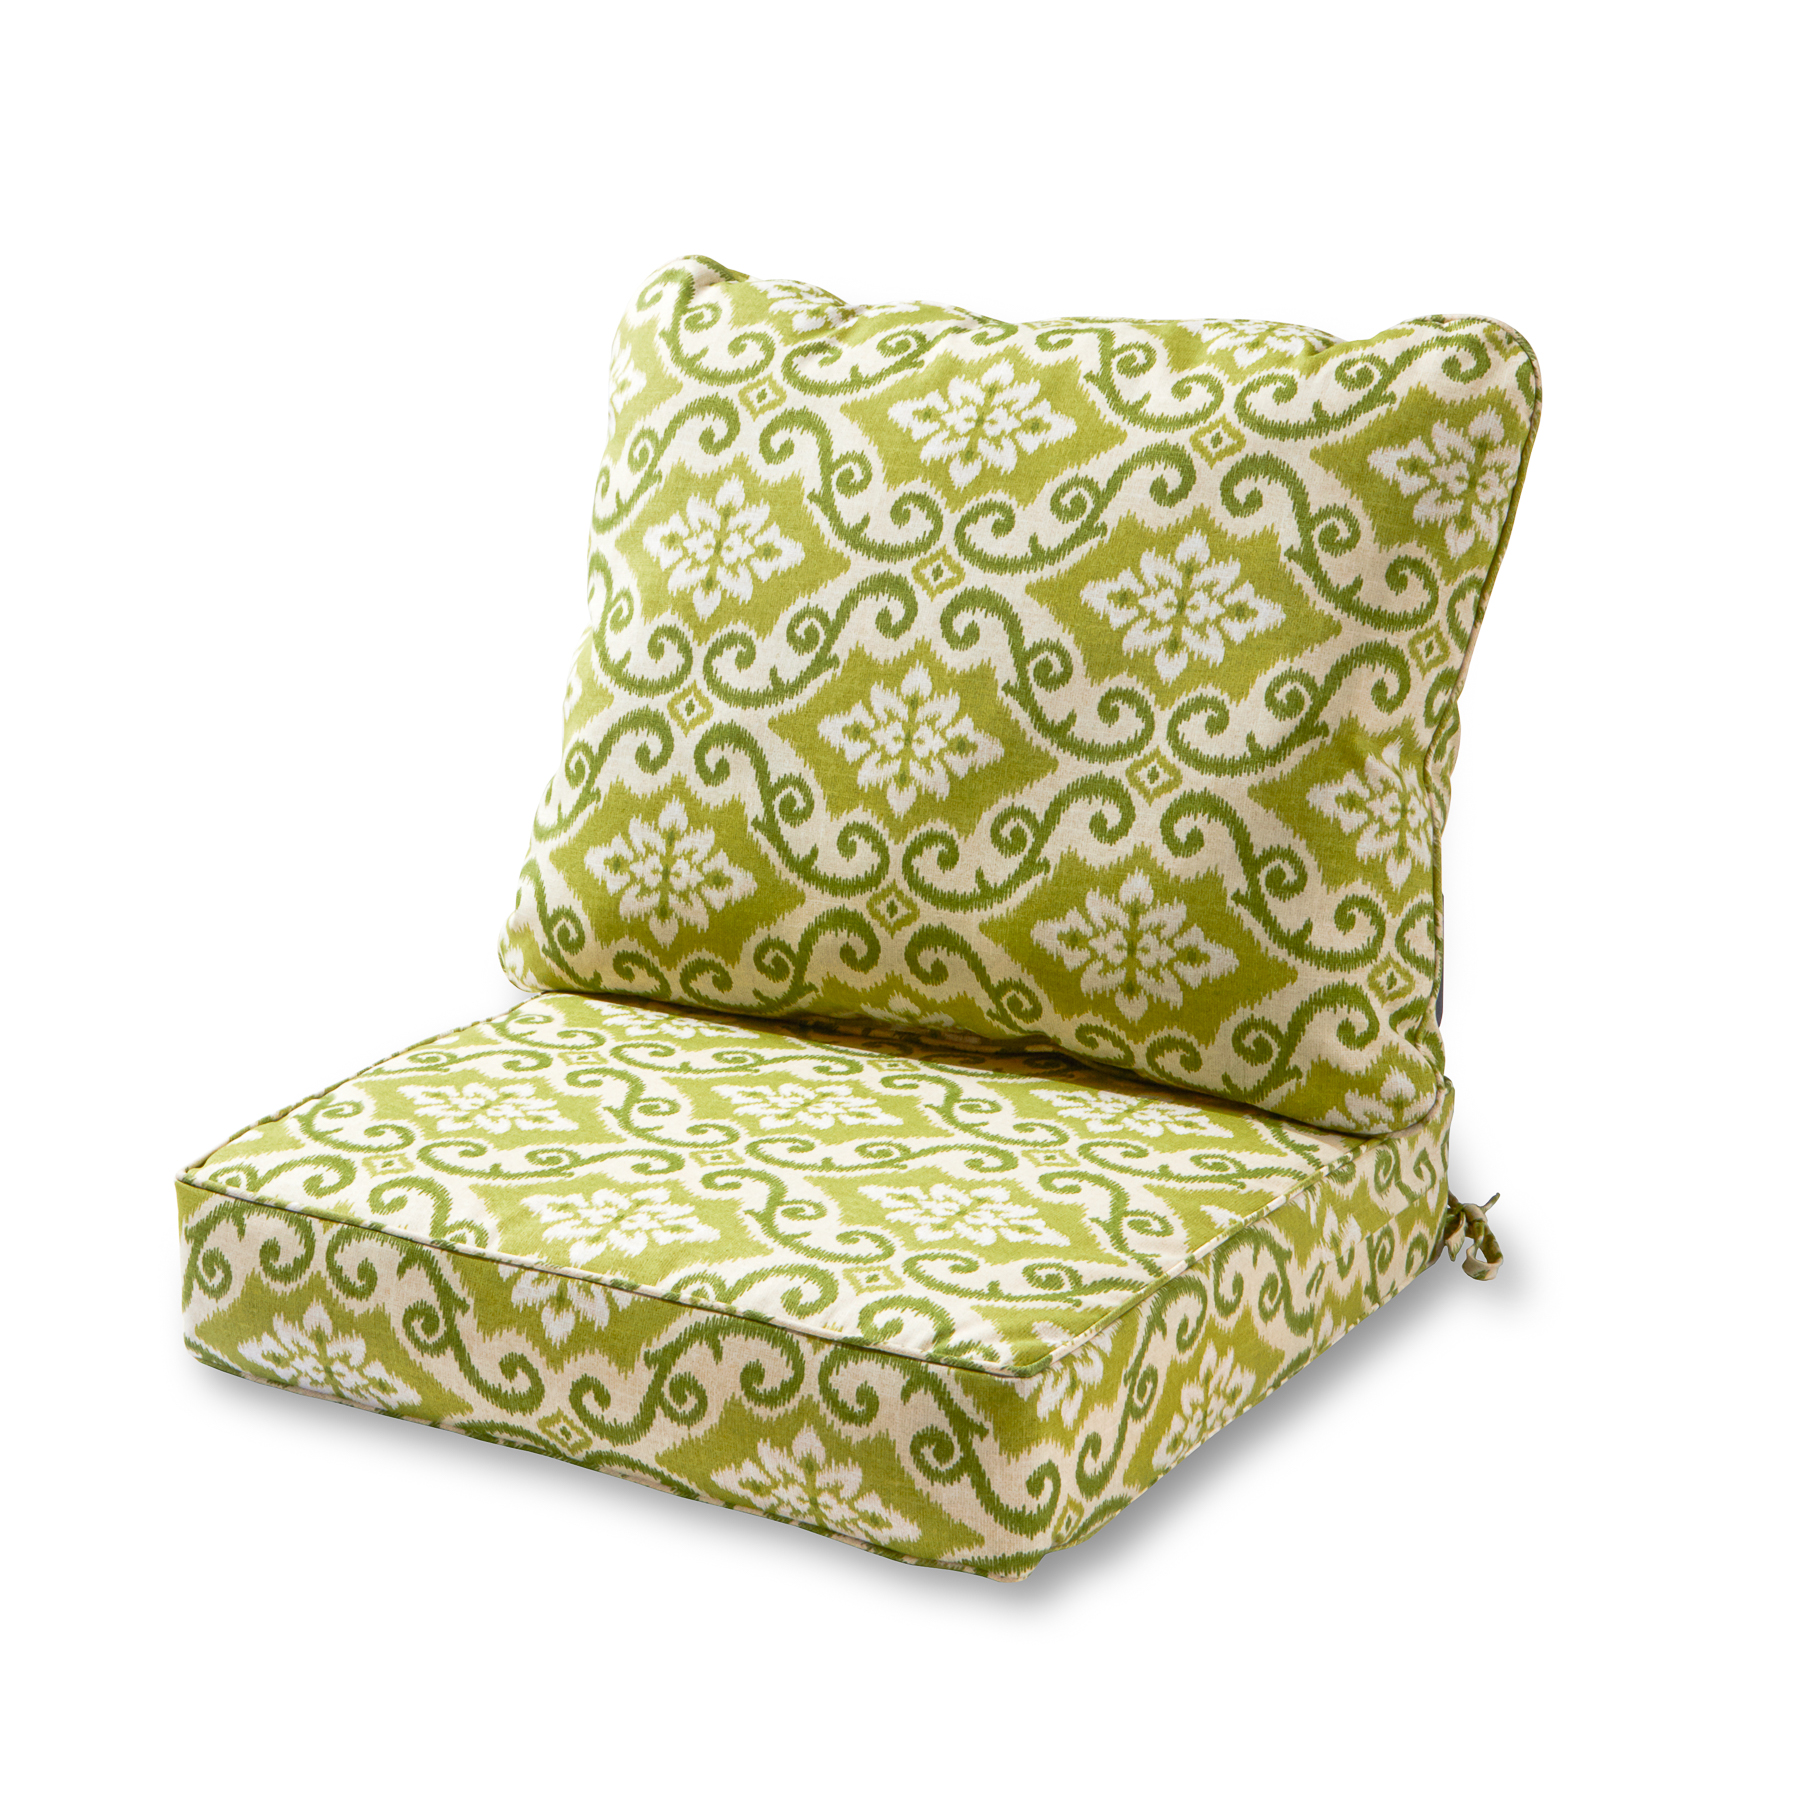 Greendale Home Fashions Shoreham Outdoor Deep Seat Cushion Set